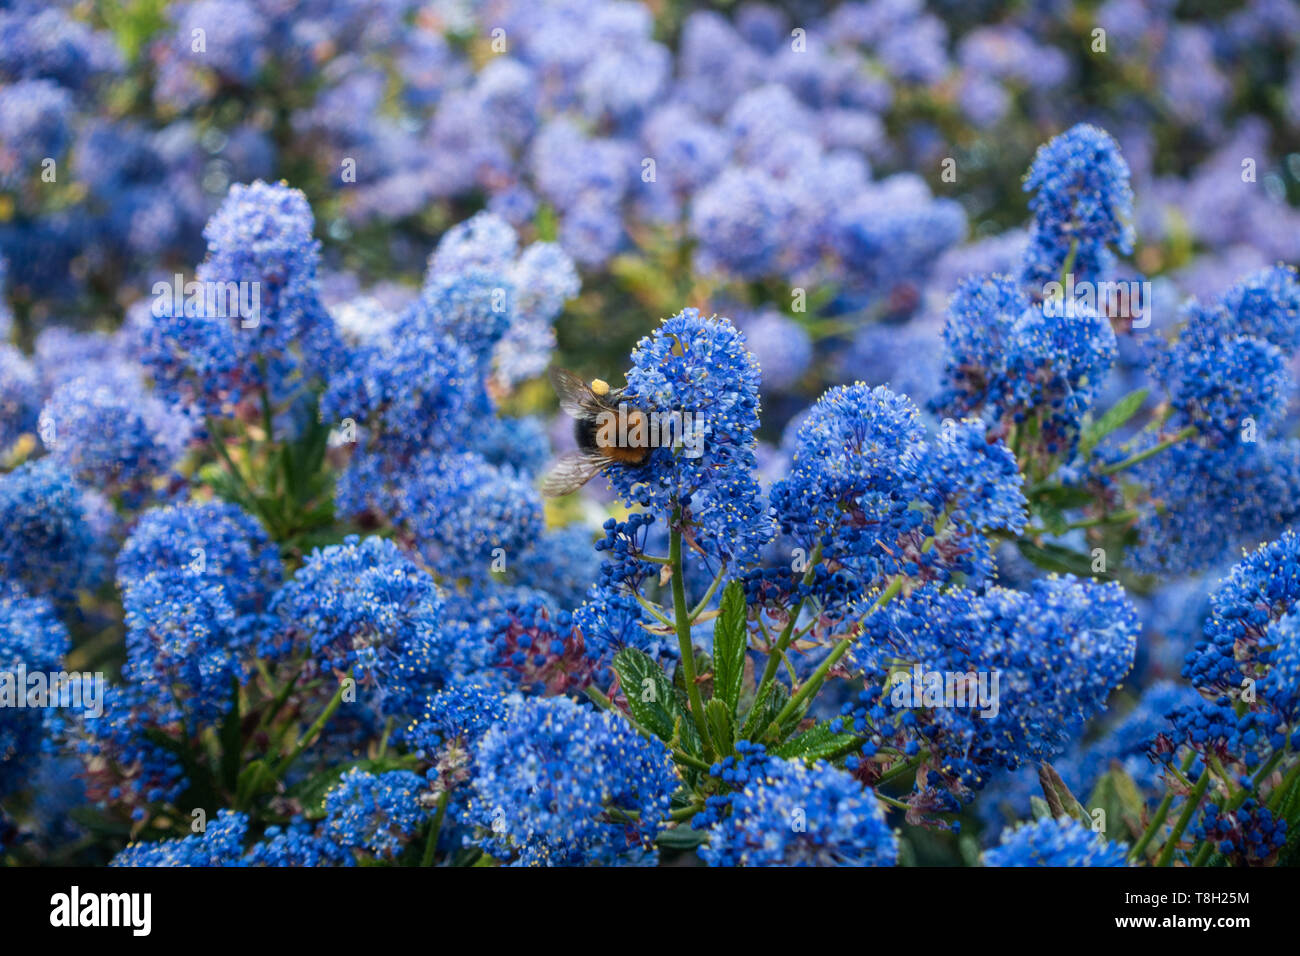 a-bumblebee-on-blue-ceanothus-flowers-T8H25M.jpg